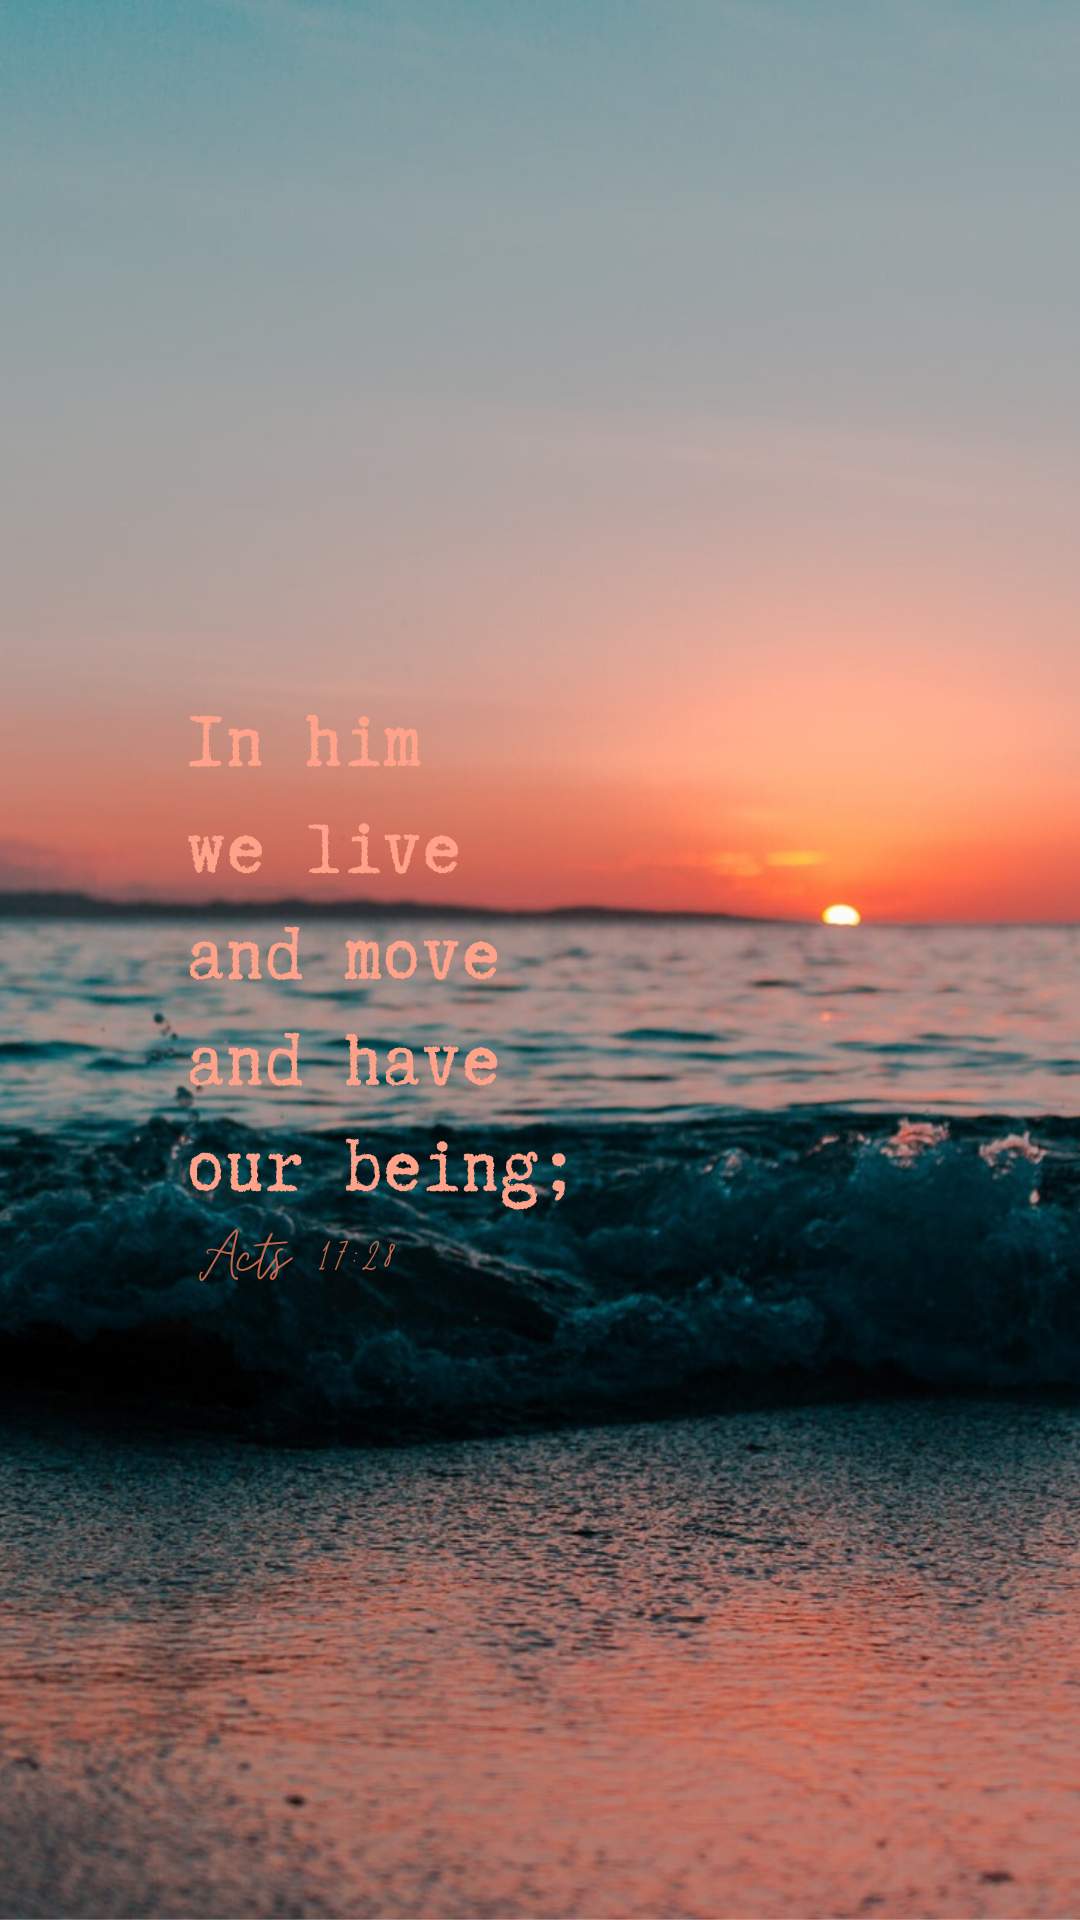 In Him we live and move and have our being; Acts 17:28 July 2020 Wallpaper